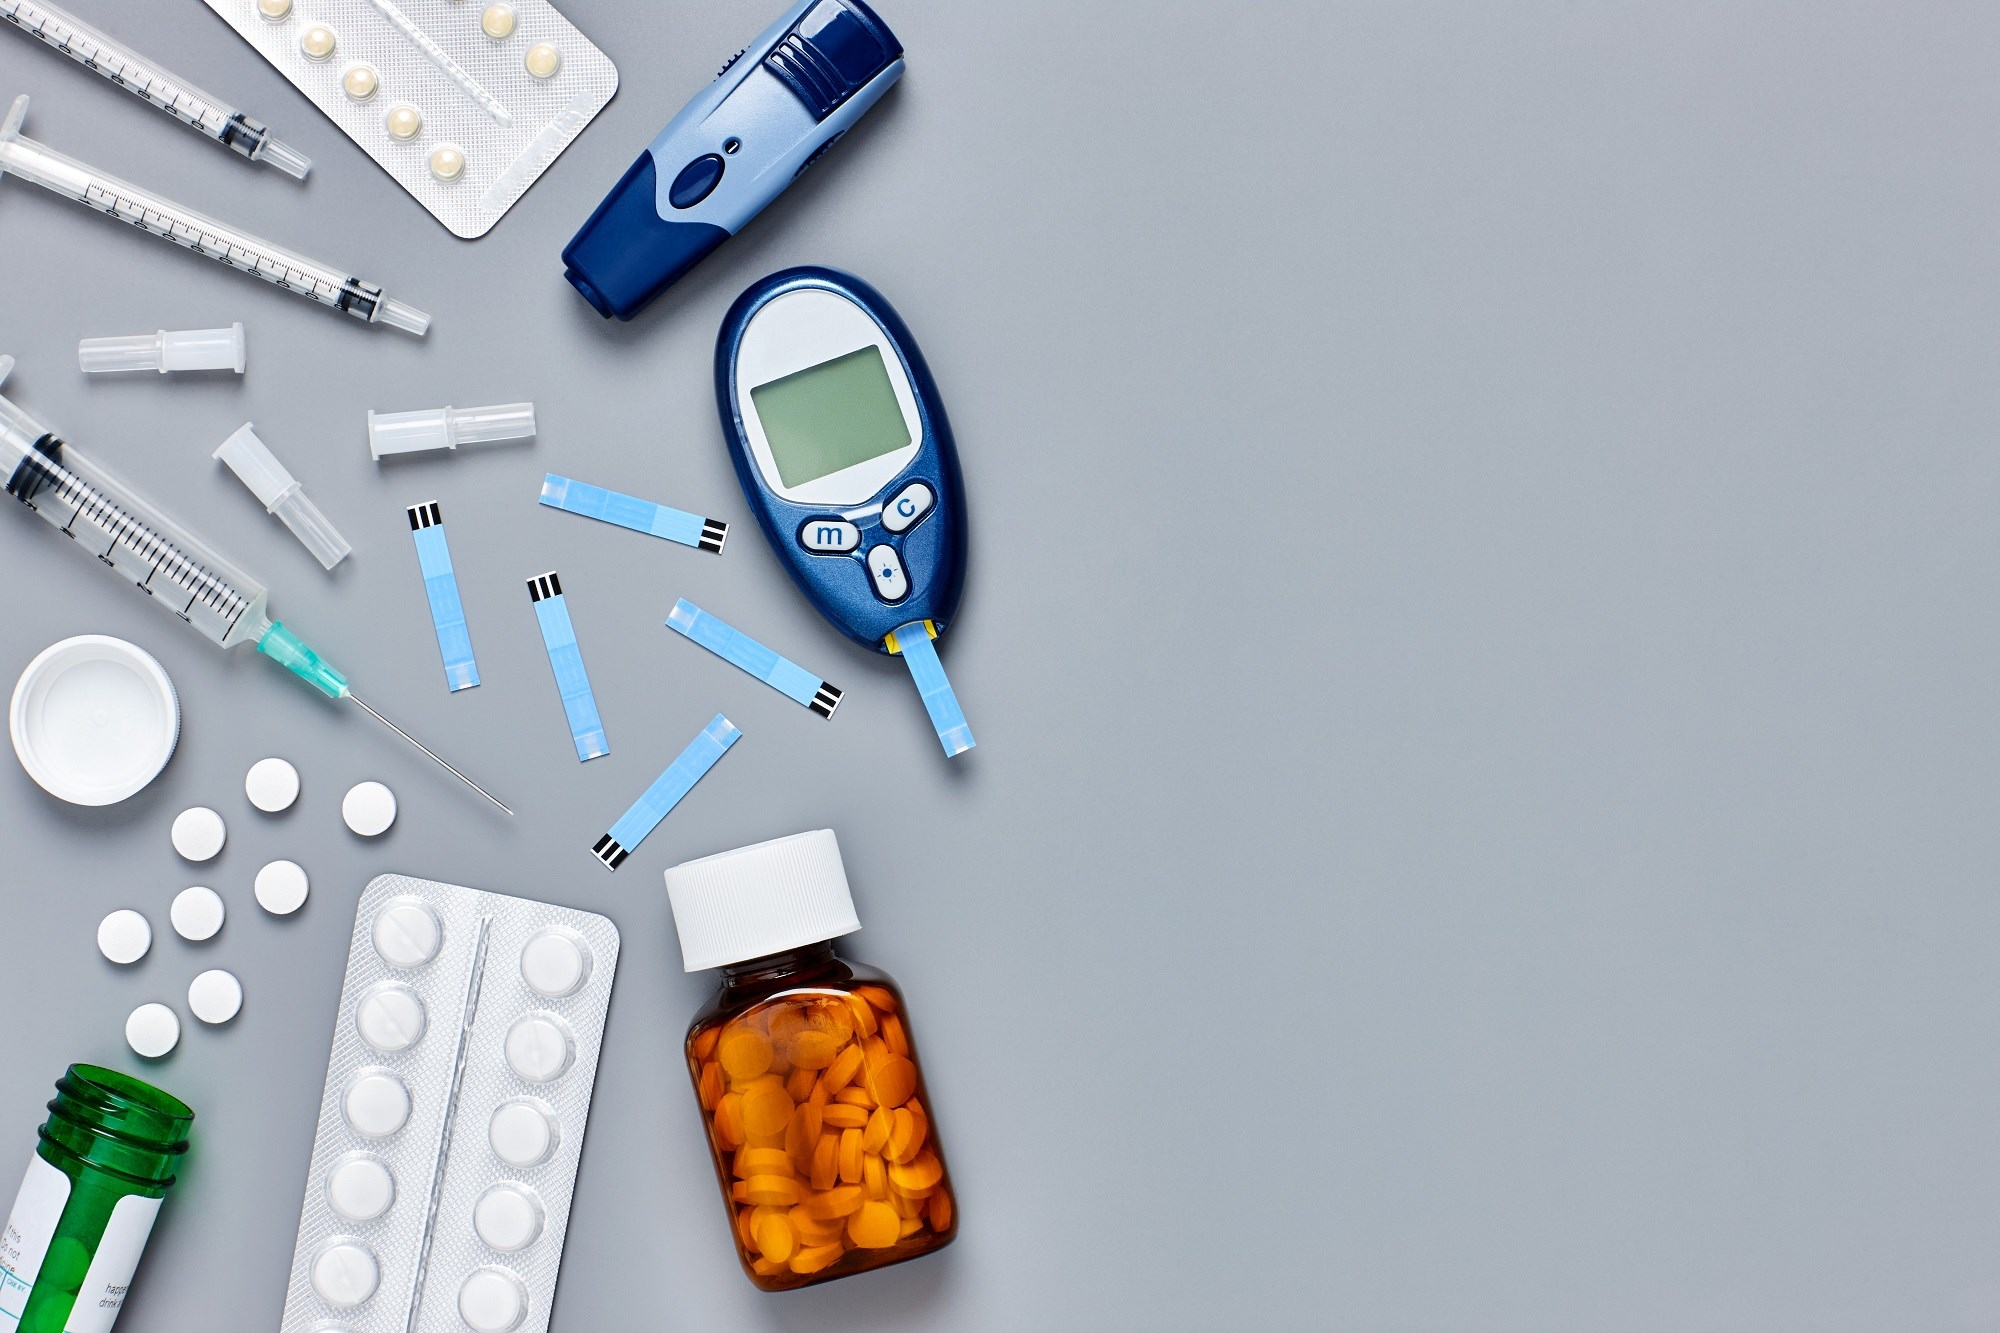 Lower Hypoglycemia Risk, Greater Weight Loss With SGLT2 Inhibitor, Sulfonylurea in T2D